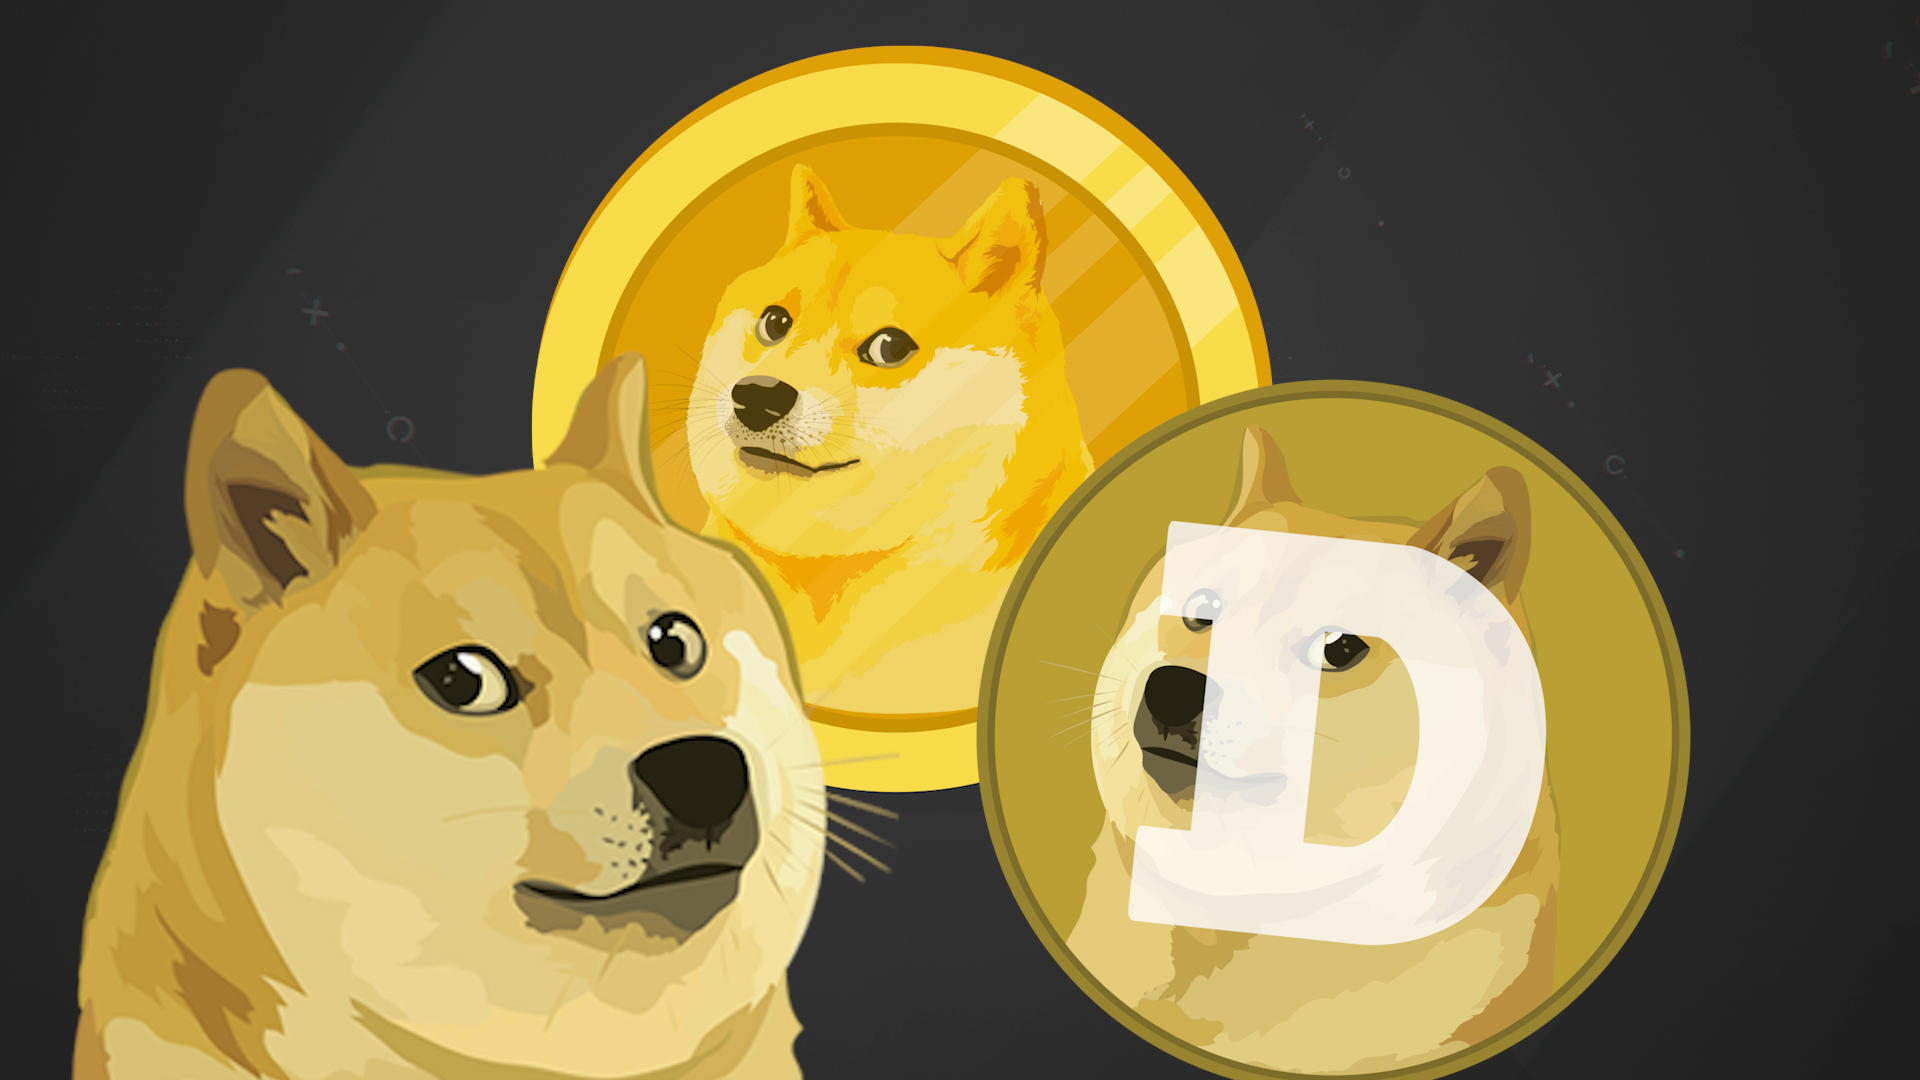 DogeCoin Just Got 25 Cents: Why Is The Internet So Enthusiastic